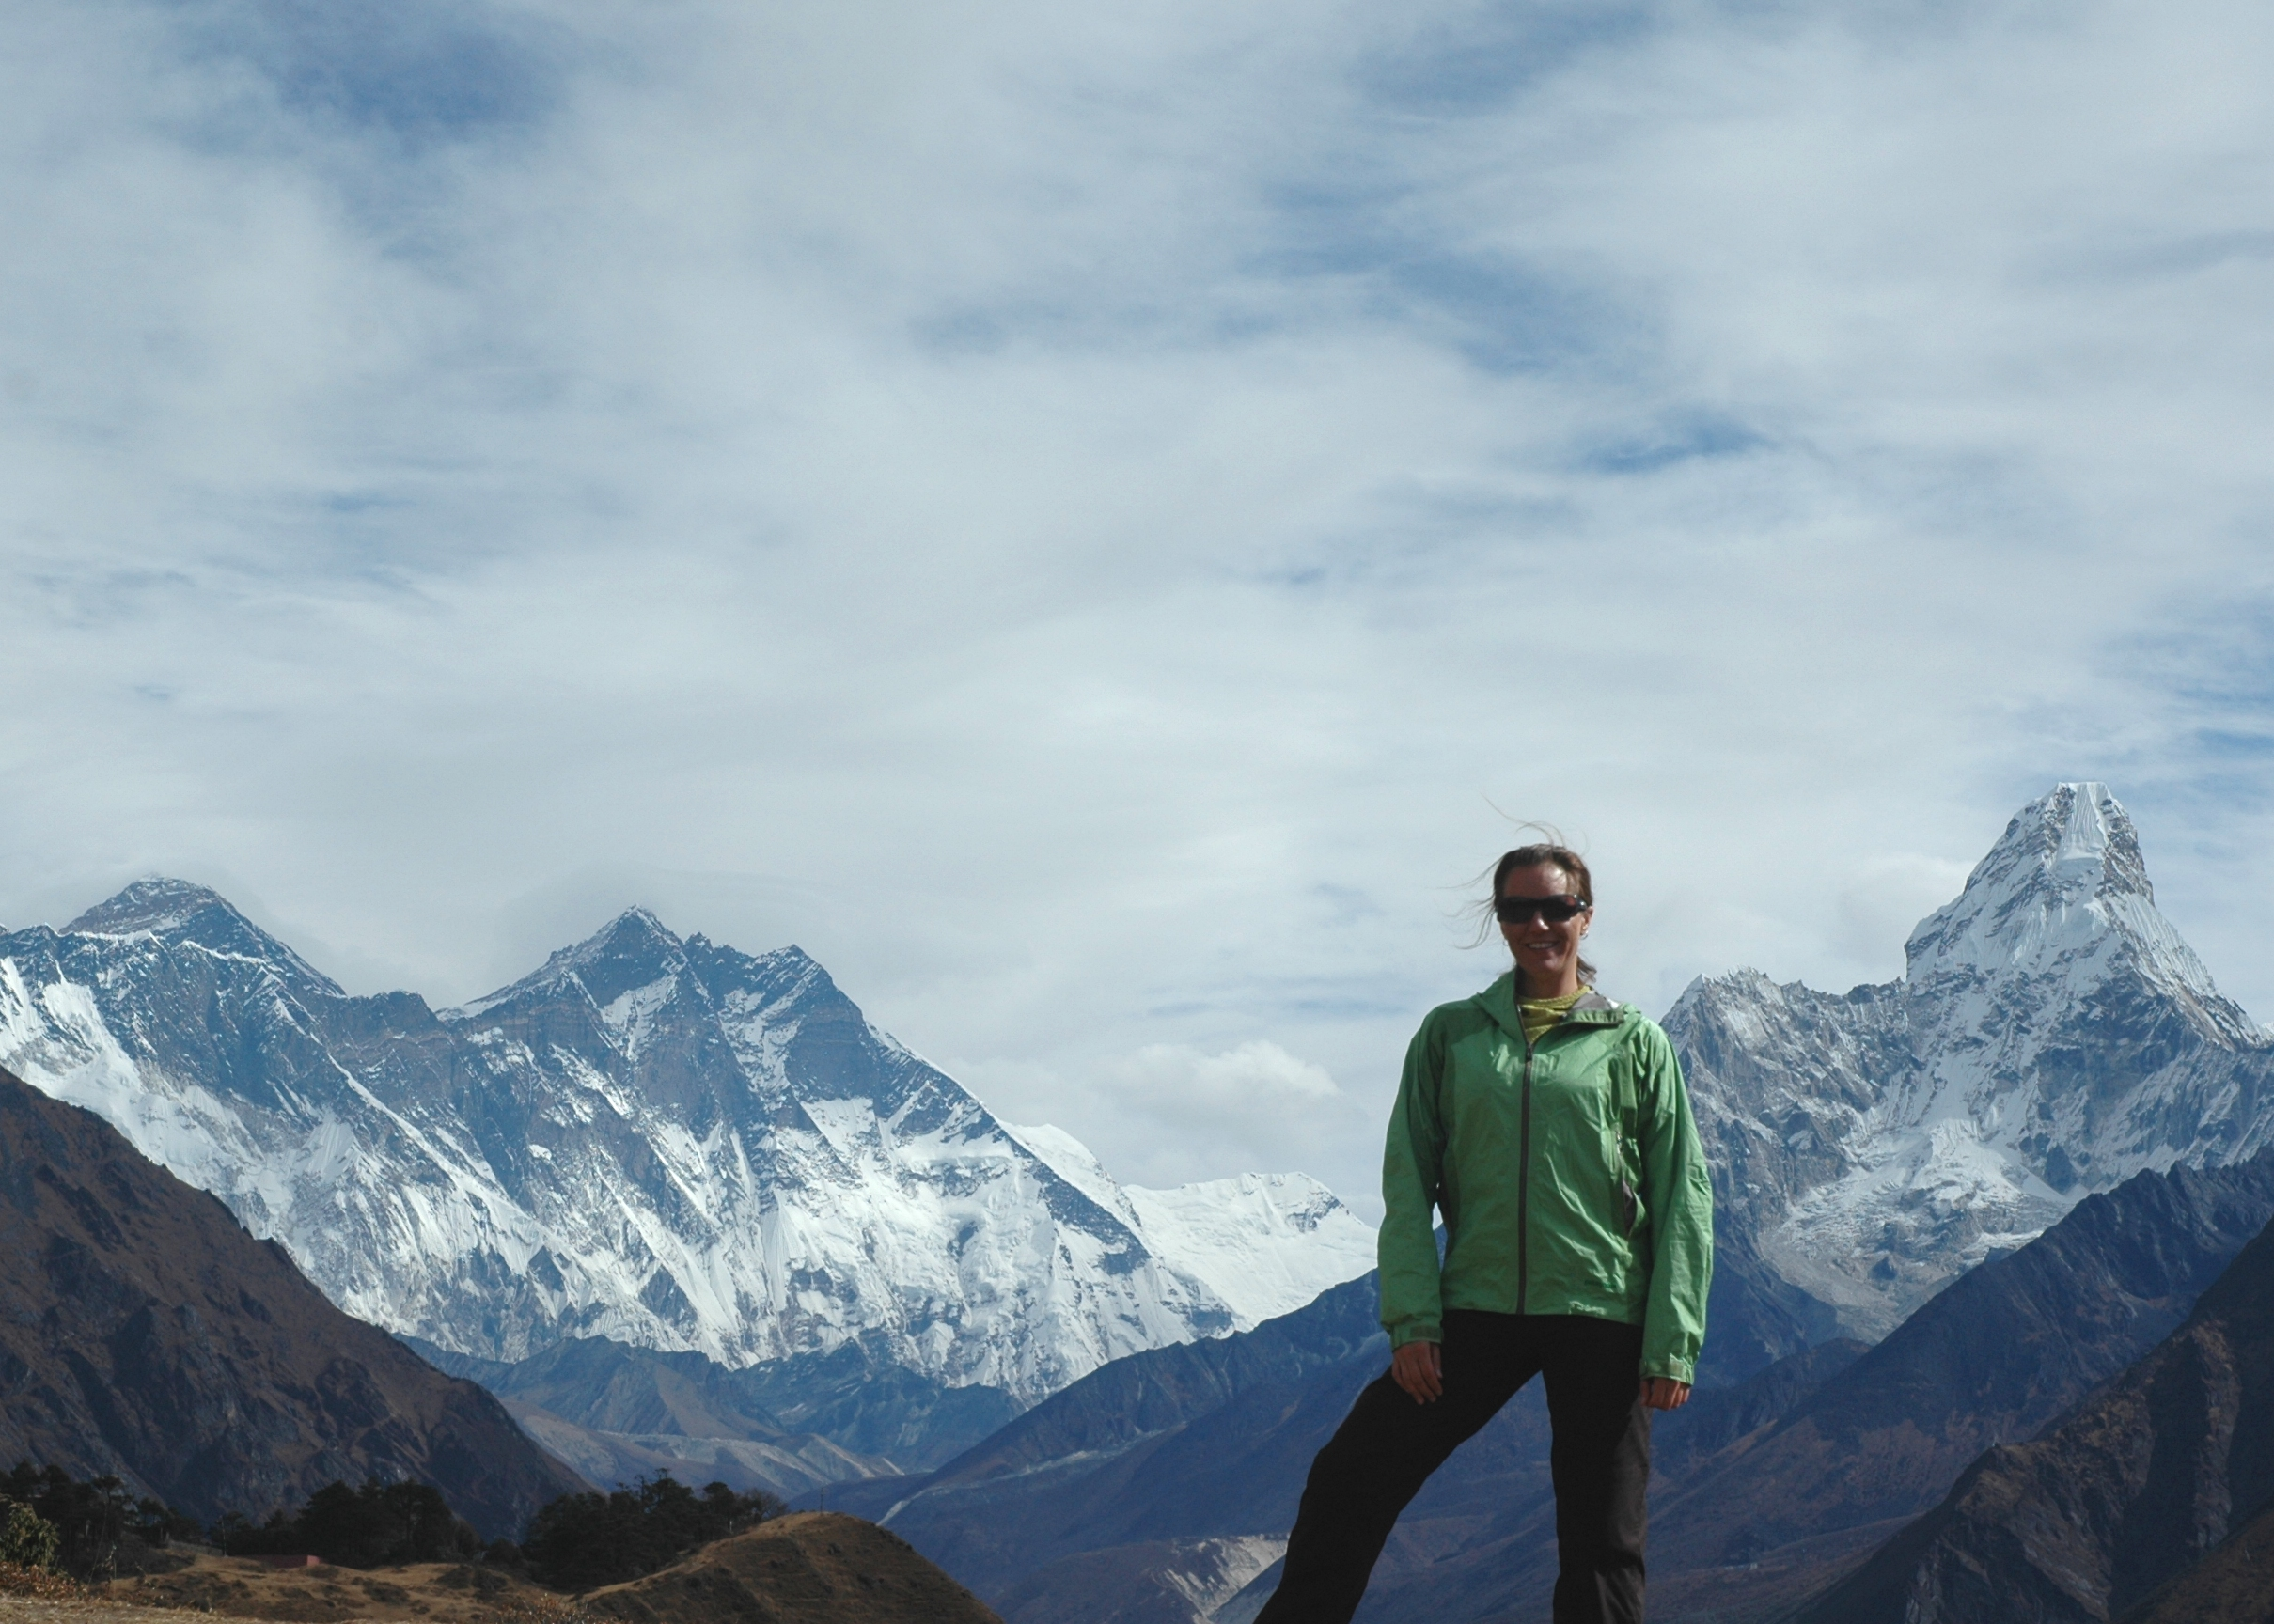 An awesome day of trekking with an amazing view from the trail of Mt. Everest and Ama Dablam, Nepal.